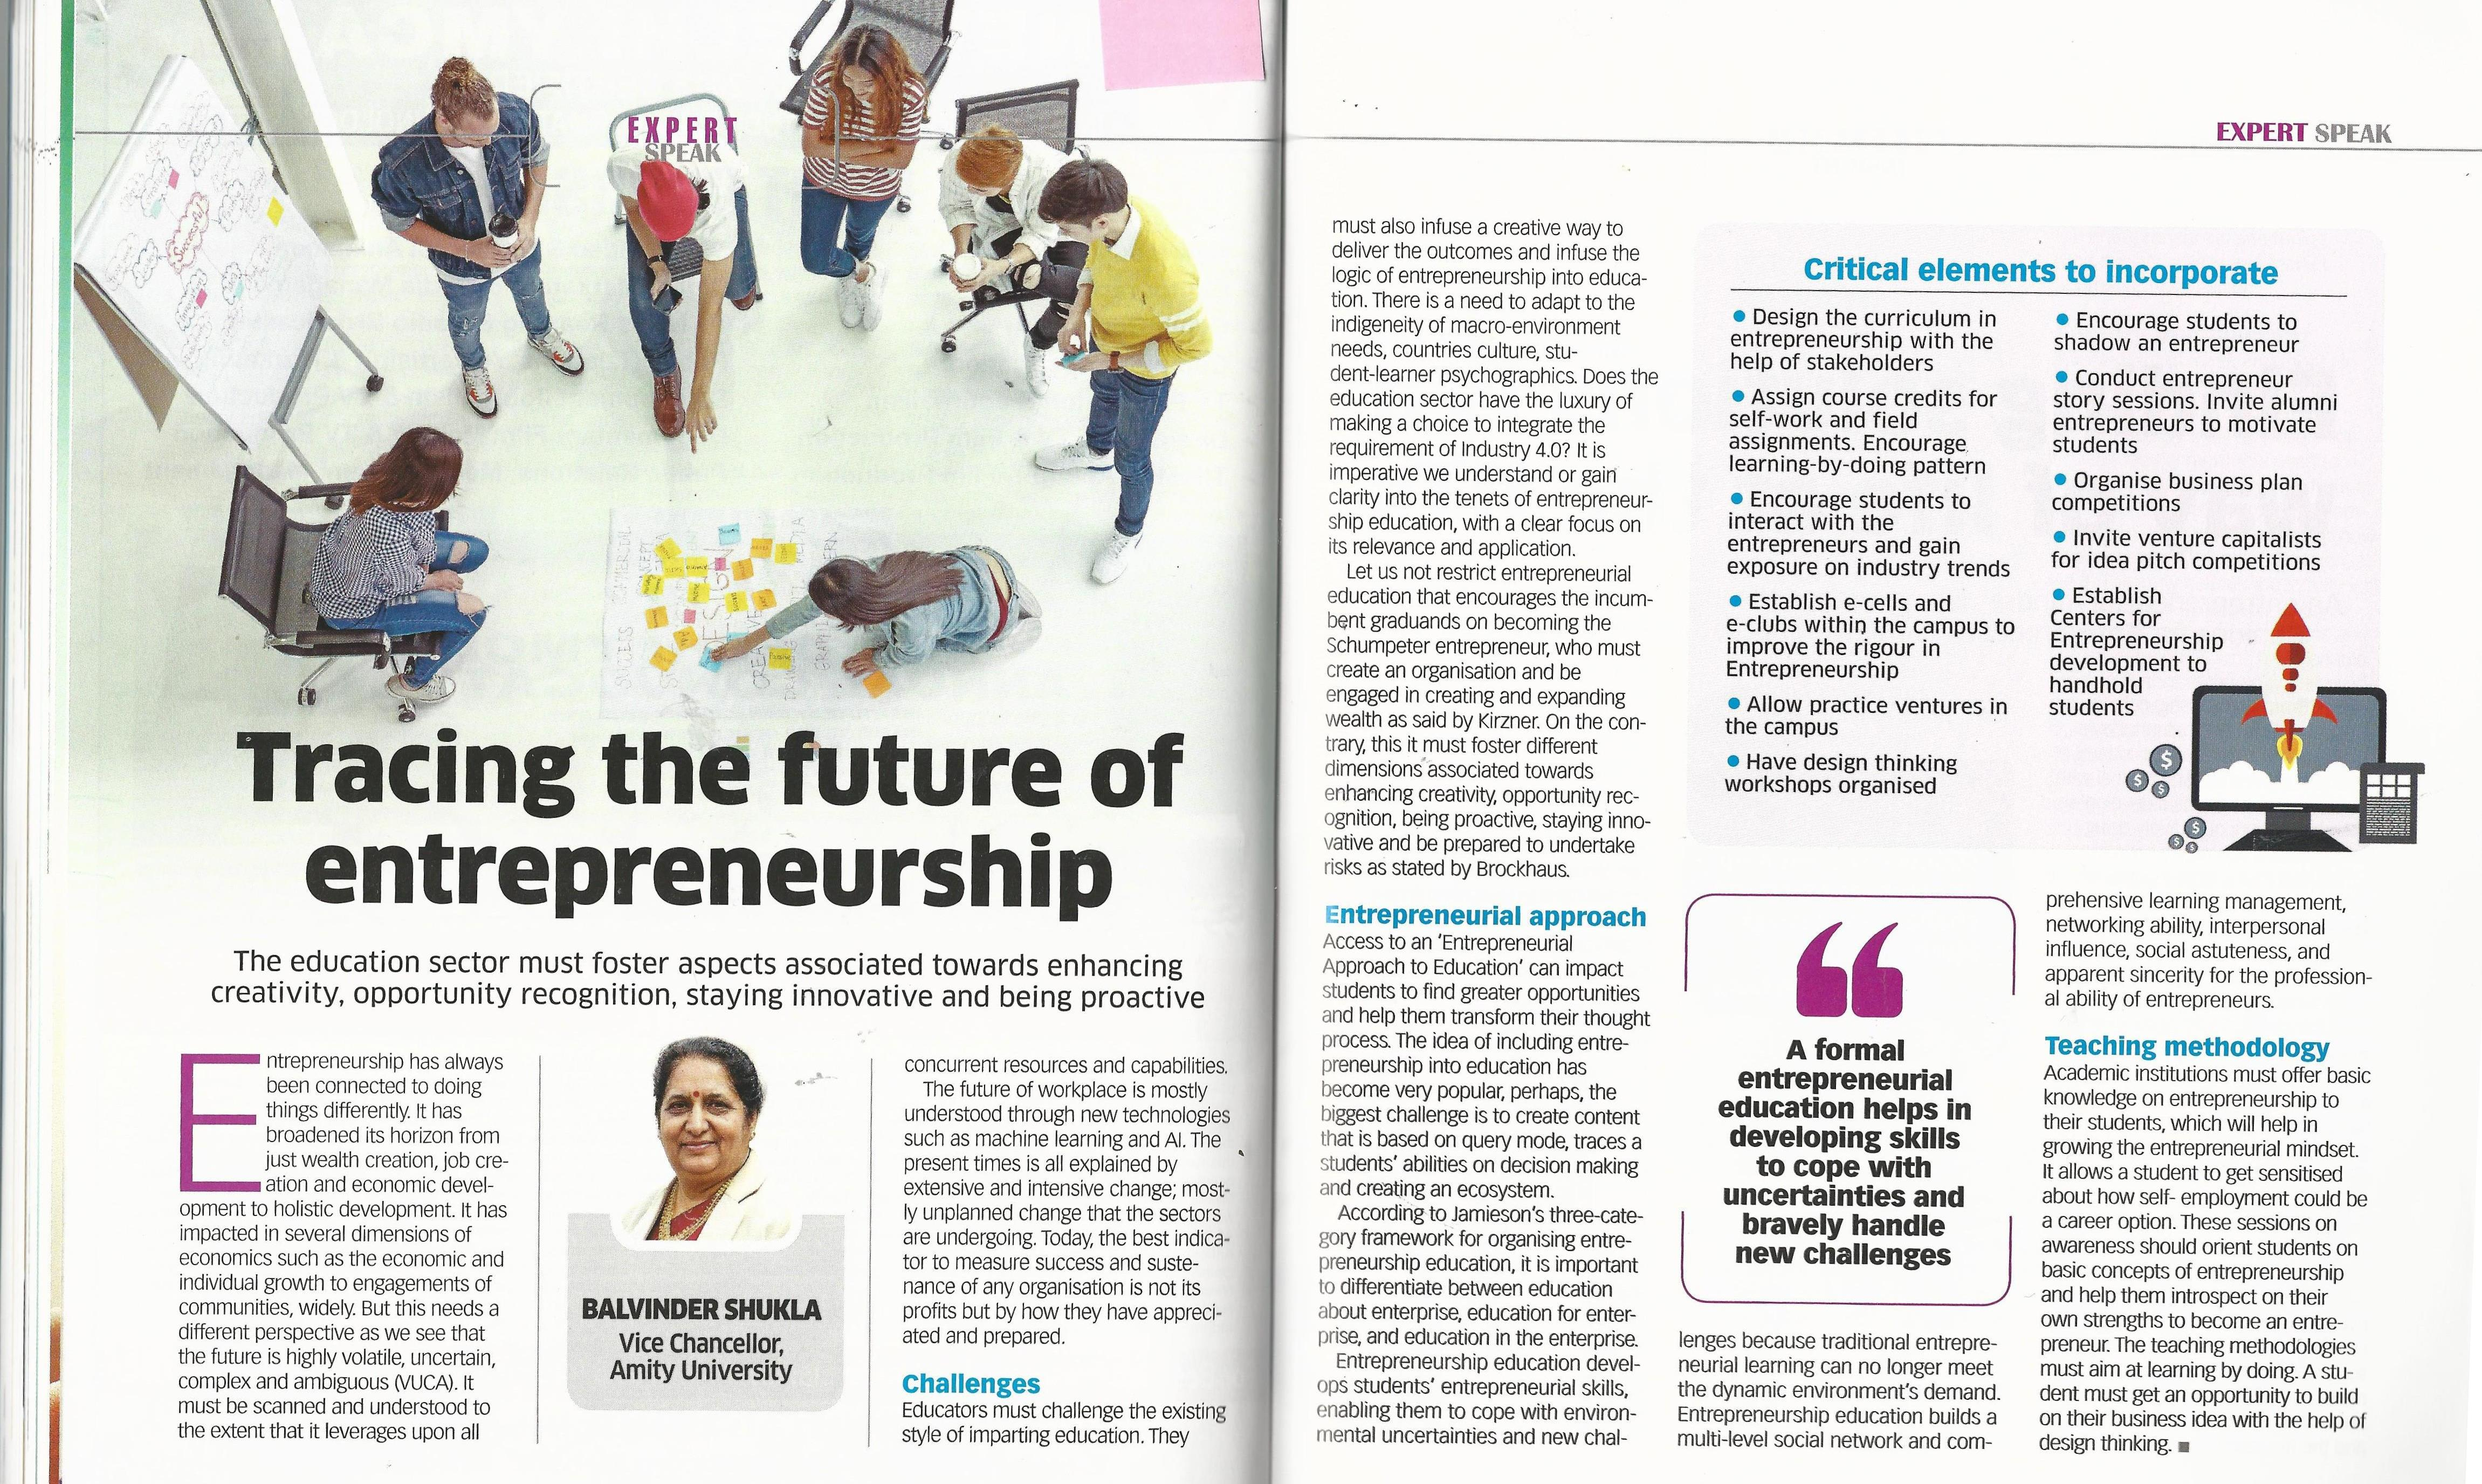 Tracing the future of entrepreneurship- Article by Dr Balvinder Shukla - Amity Events